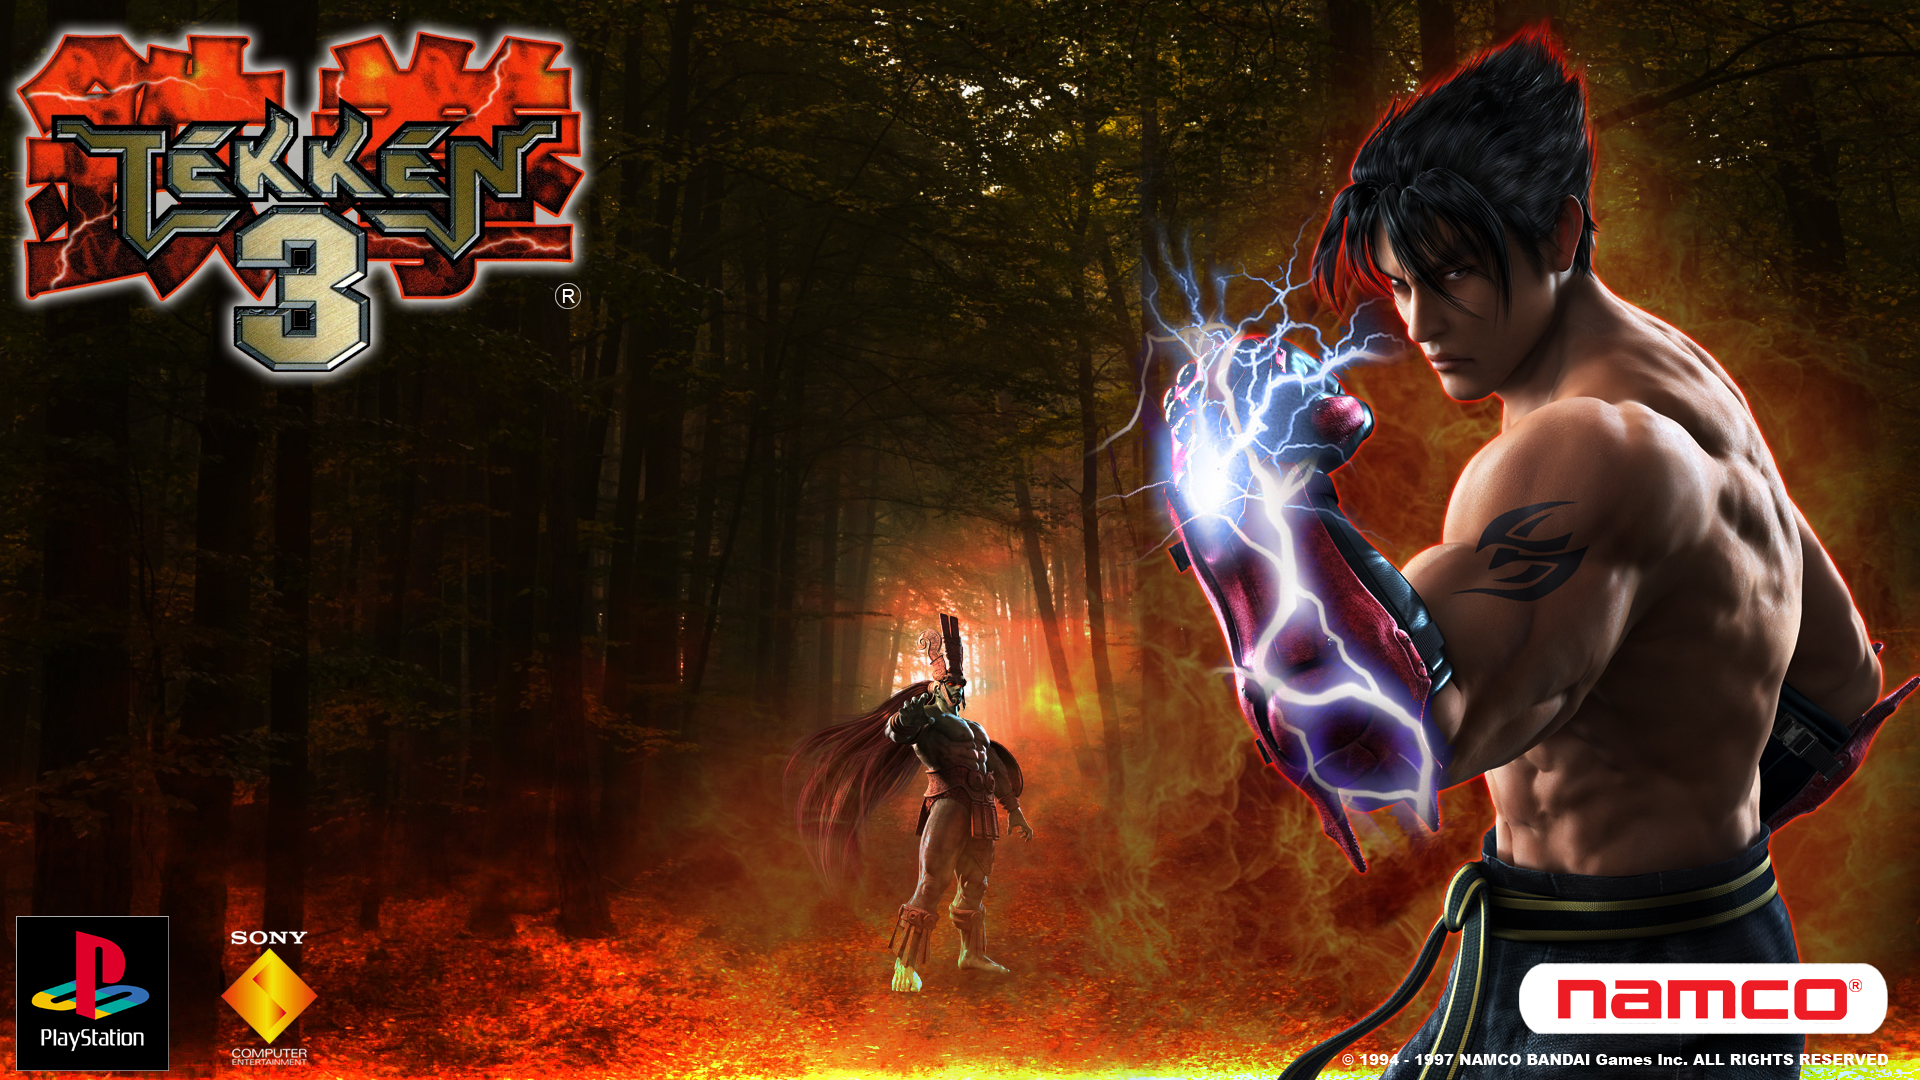 tekken 3 full hd wallpaper and background image